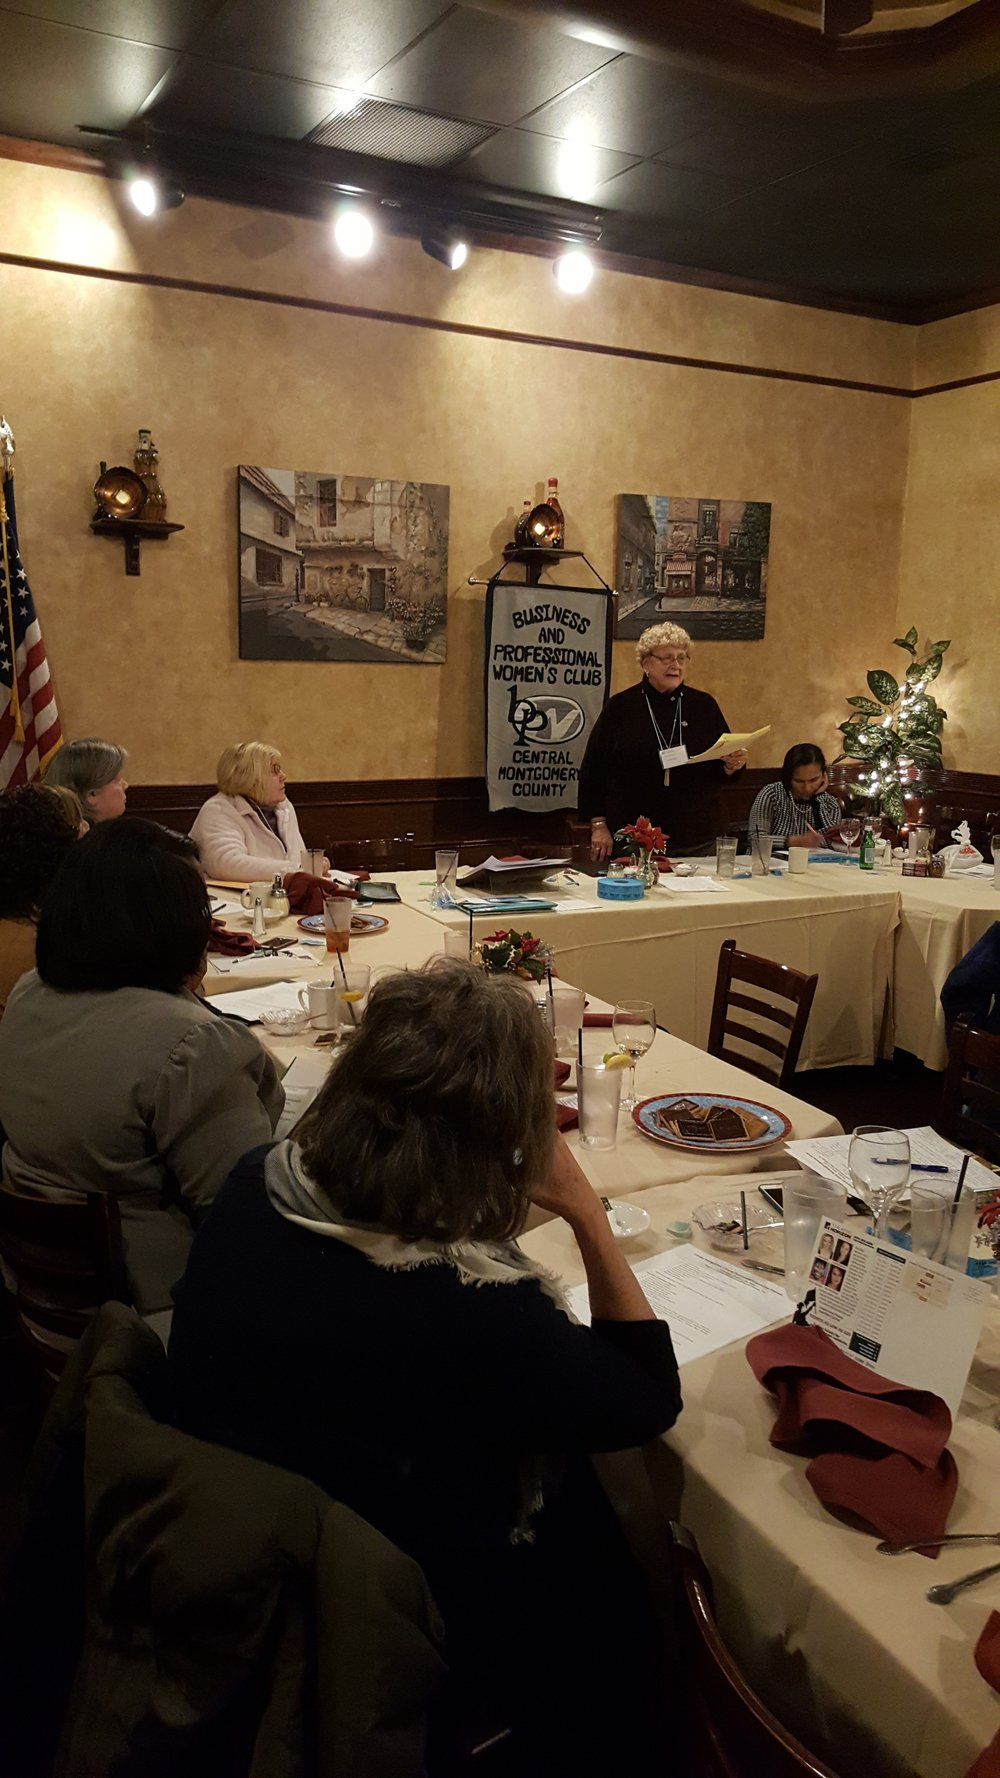 - Longtime CMC member, Norma Zarfoss gave a stellar talk on BPW PA Foundation during our January meeting. Norma is usually joined by Past State President, Nancy Werner, who will be back to is real soon! Foundation supports scholarships and Edith Oler emergency fund. Visit bpwpa.org to learn more.